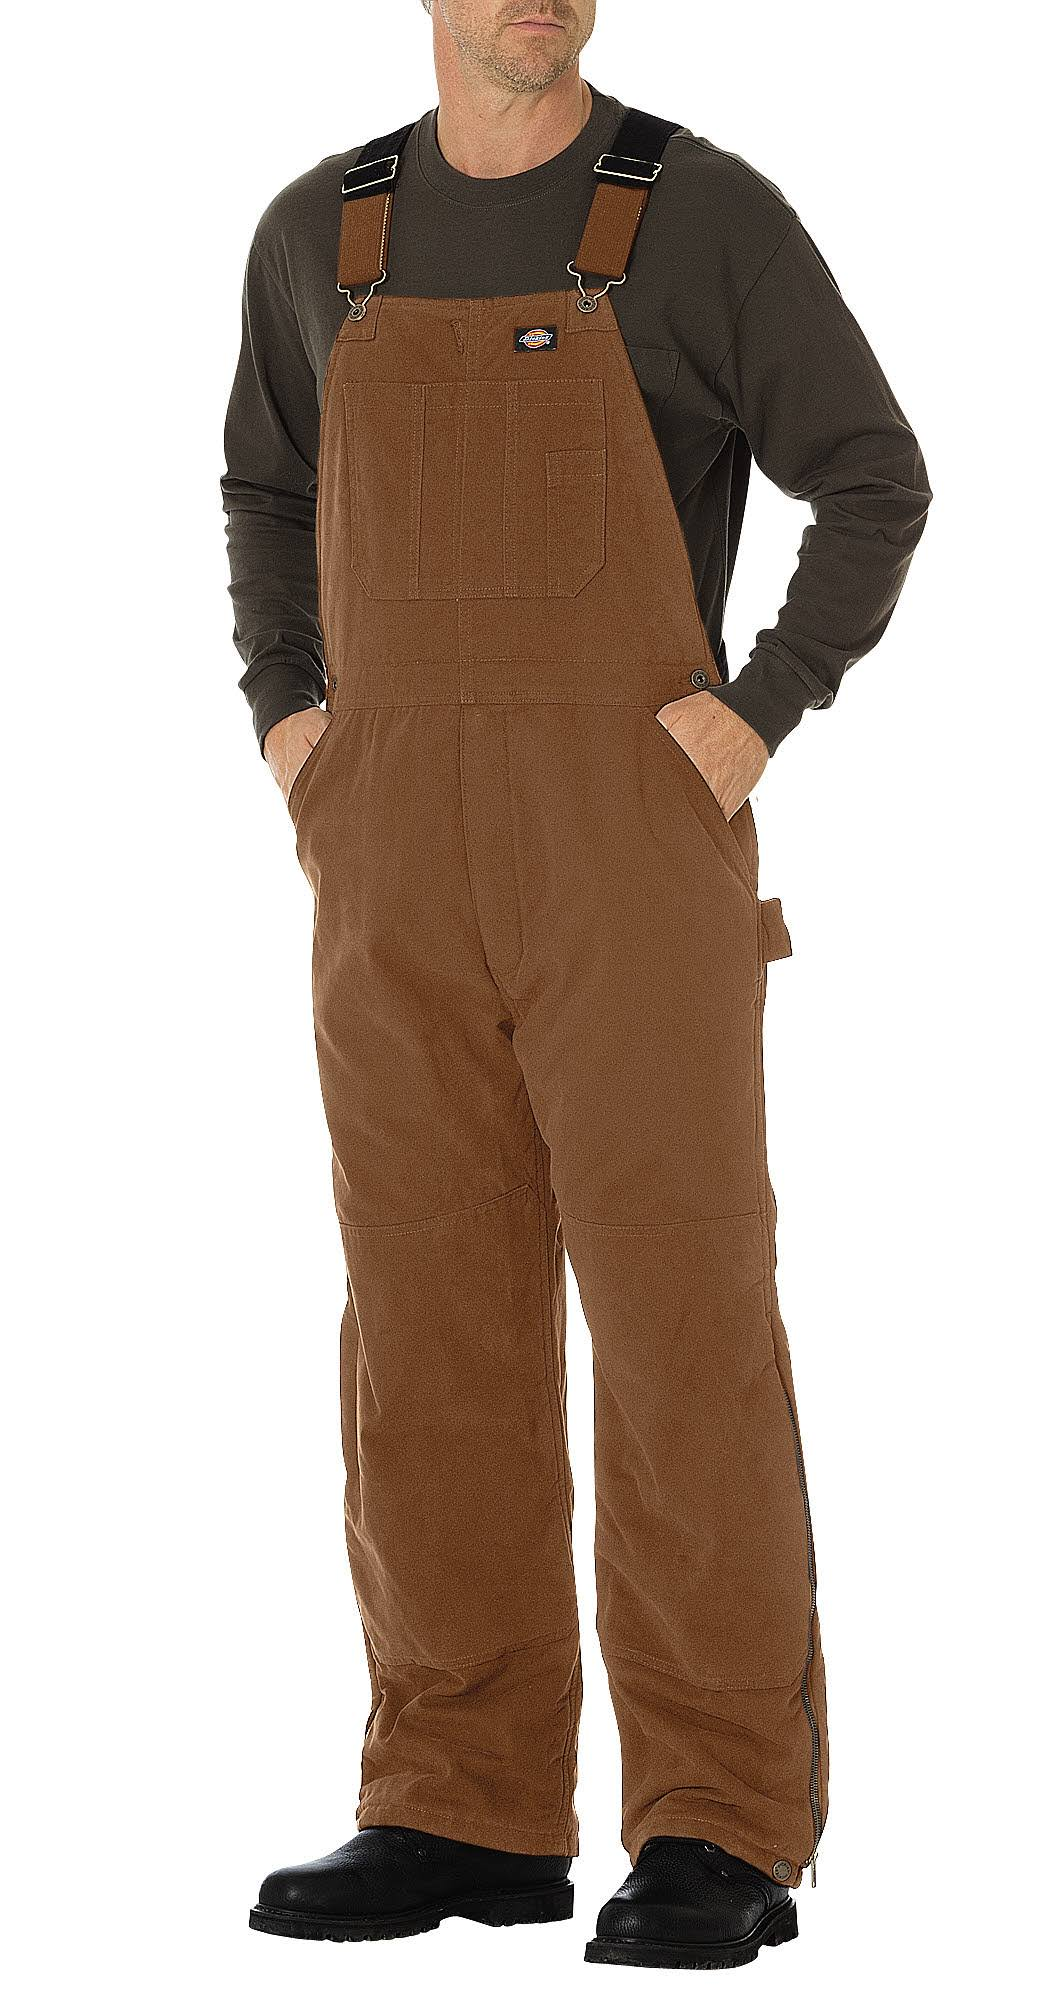 Dickies Sanded Duck Insulated Bib Overall - Brown Duck